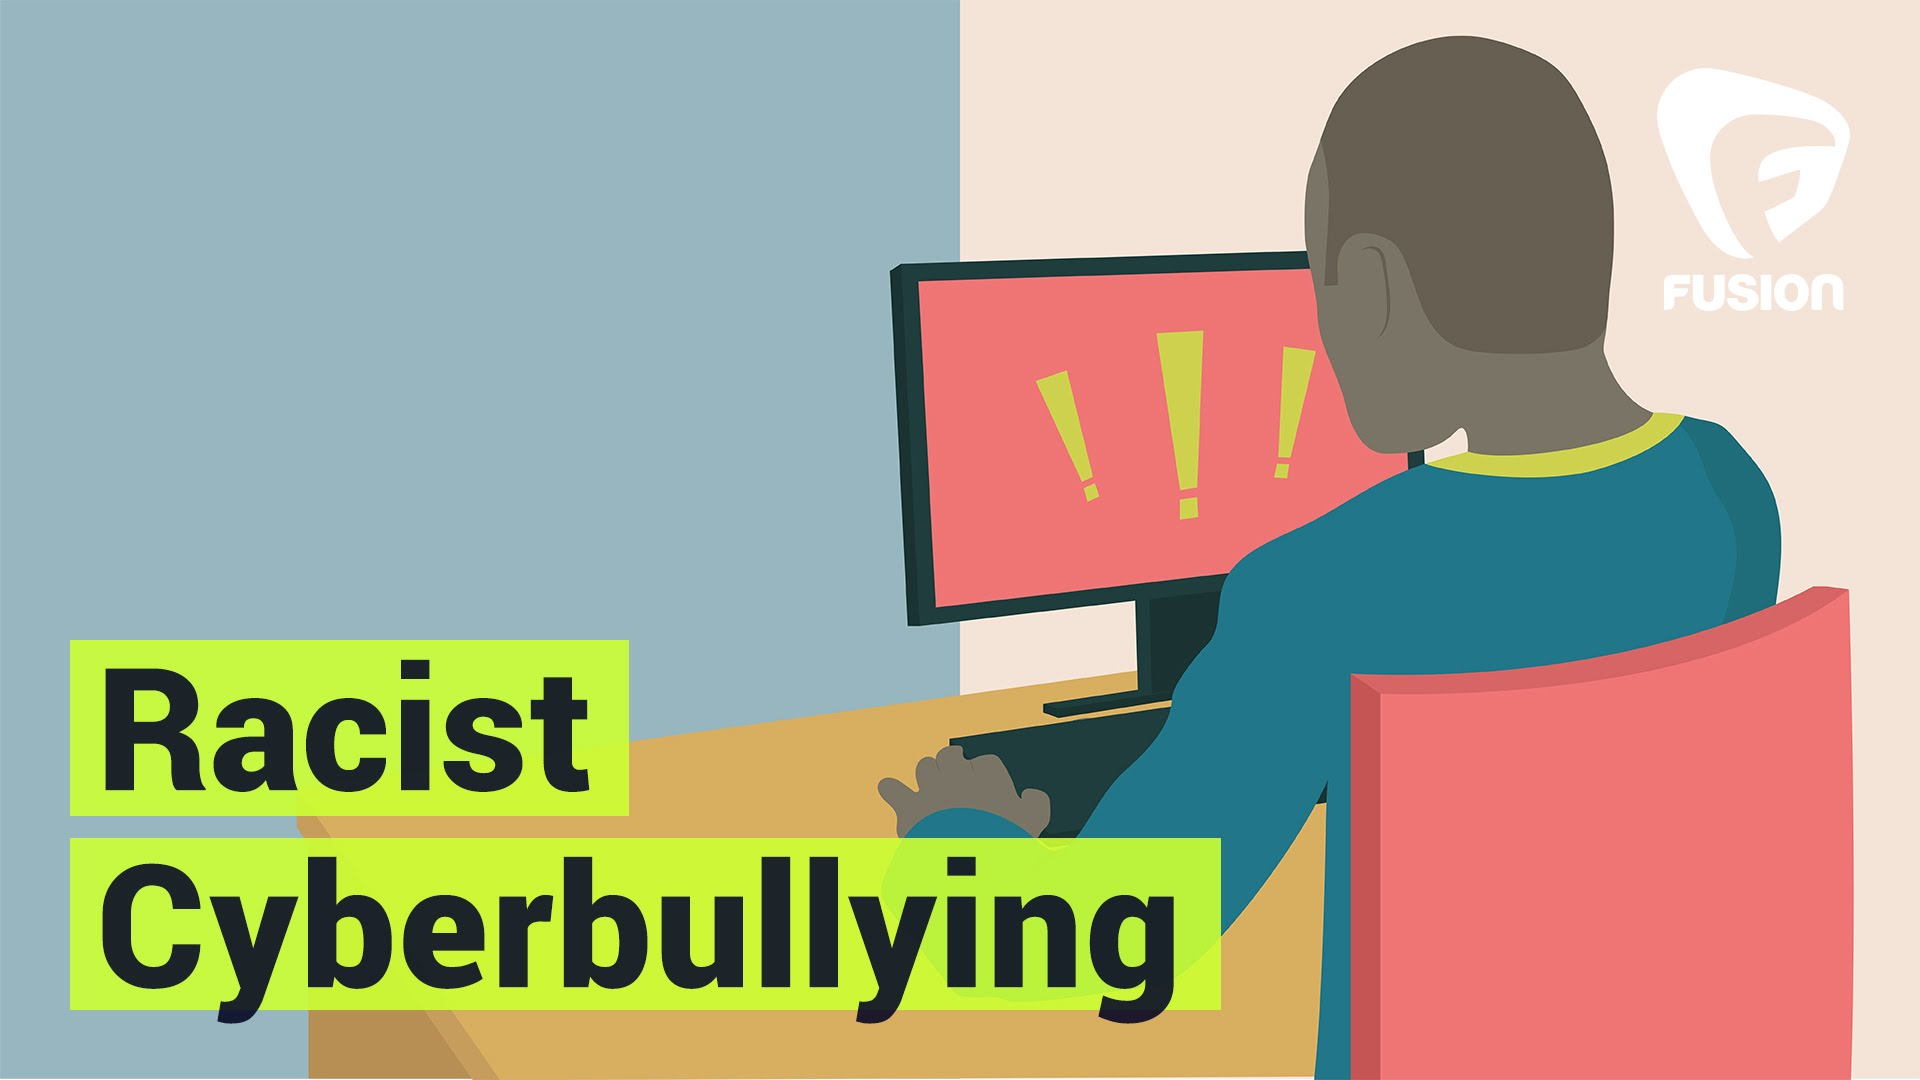 Bullying clipart racist. Cyber racism is no